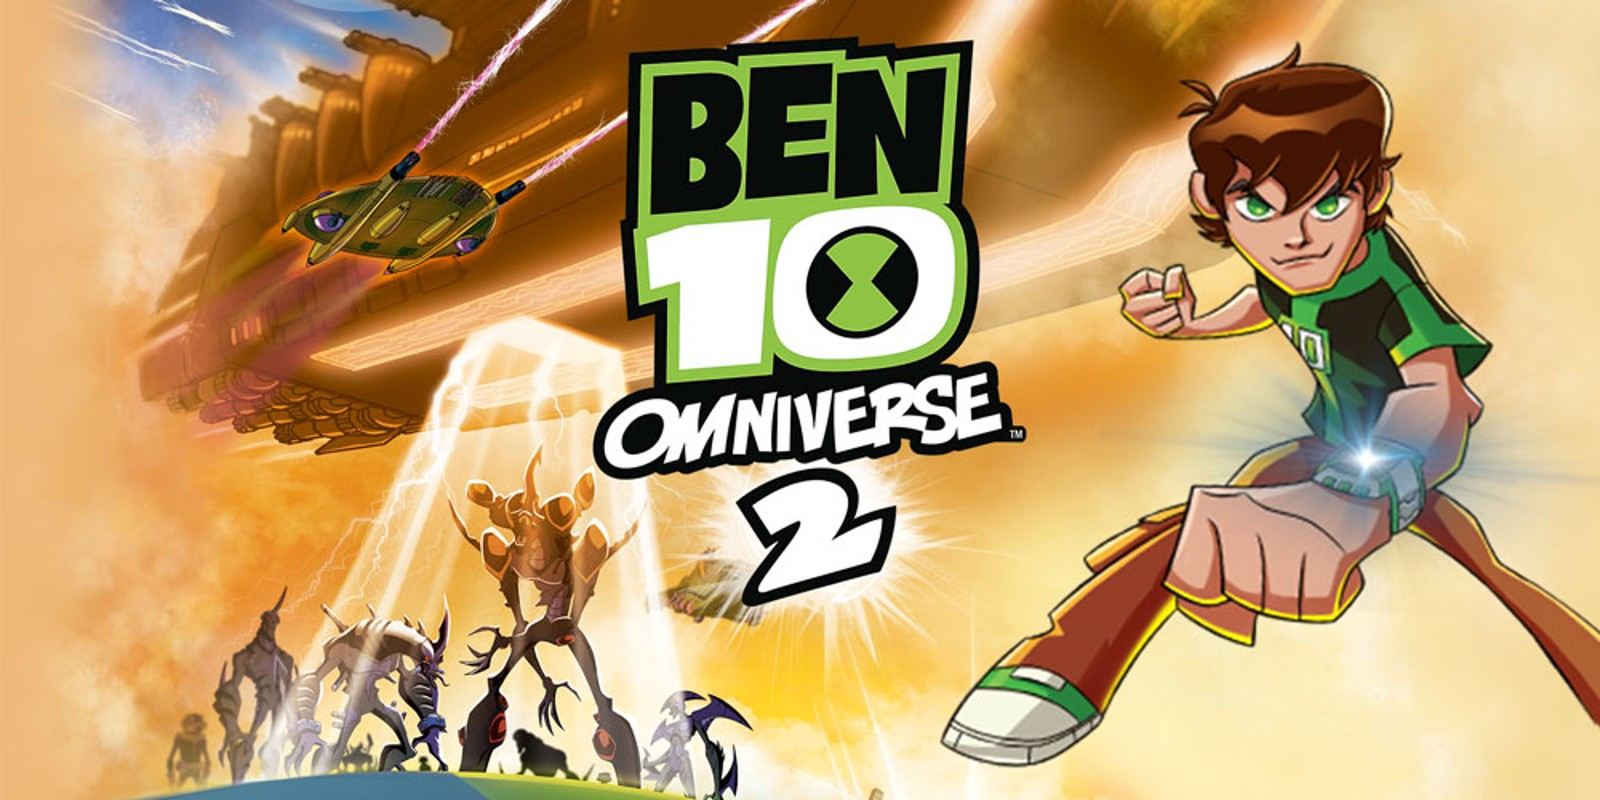 Amazon.com: Ben 10 Omniverse 2 - Nintendo 3DS: Video Games